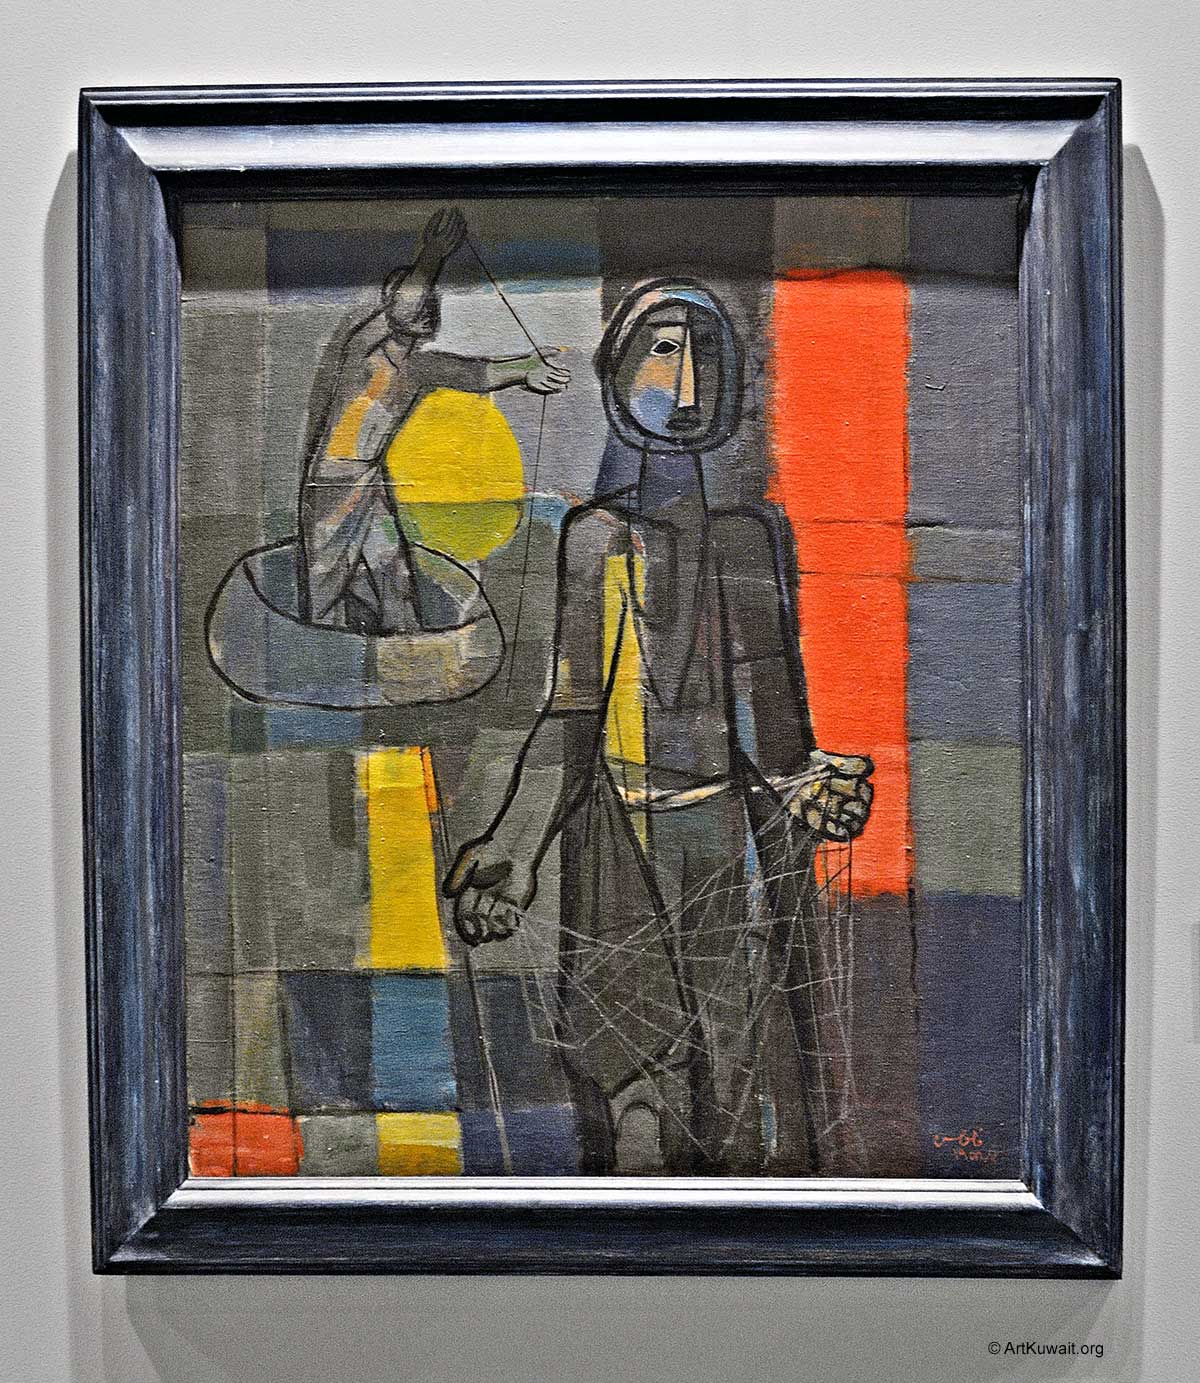 Art Dubai 2016 - Art Modern (3)